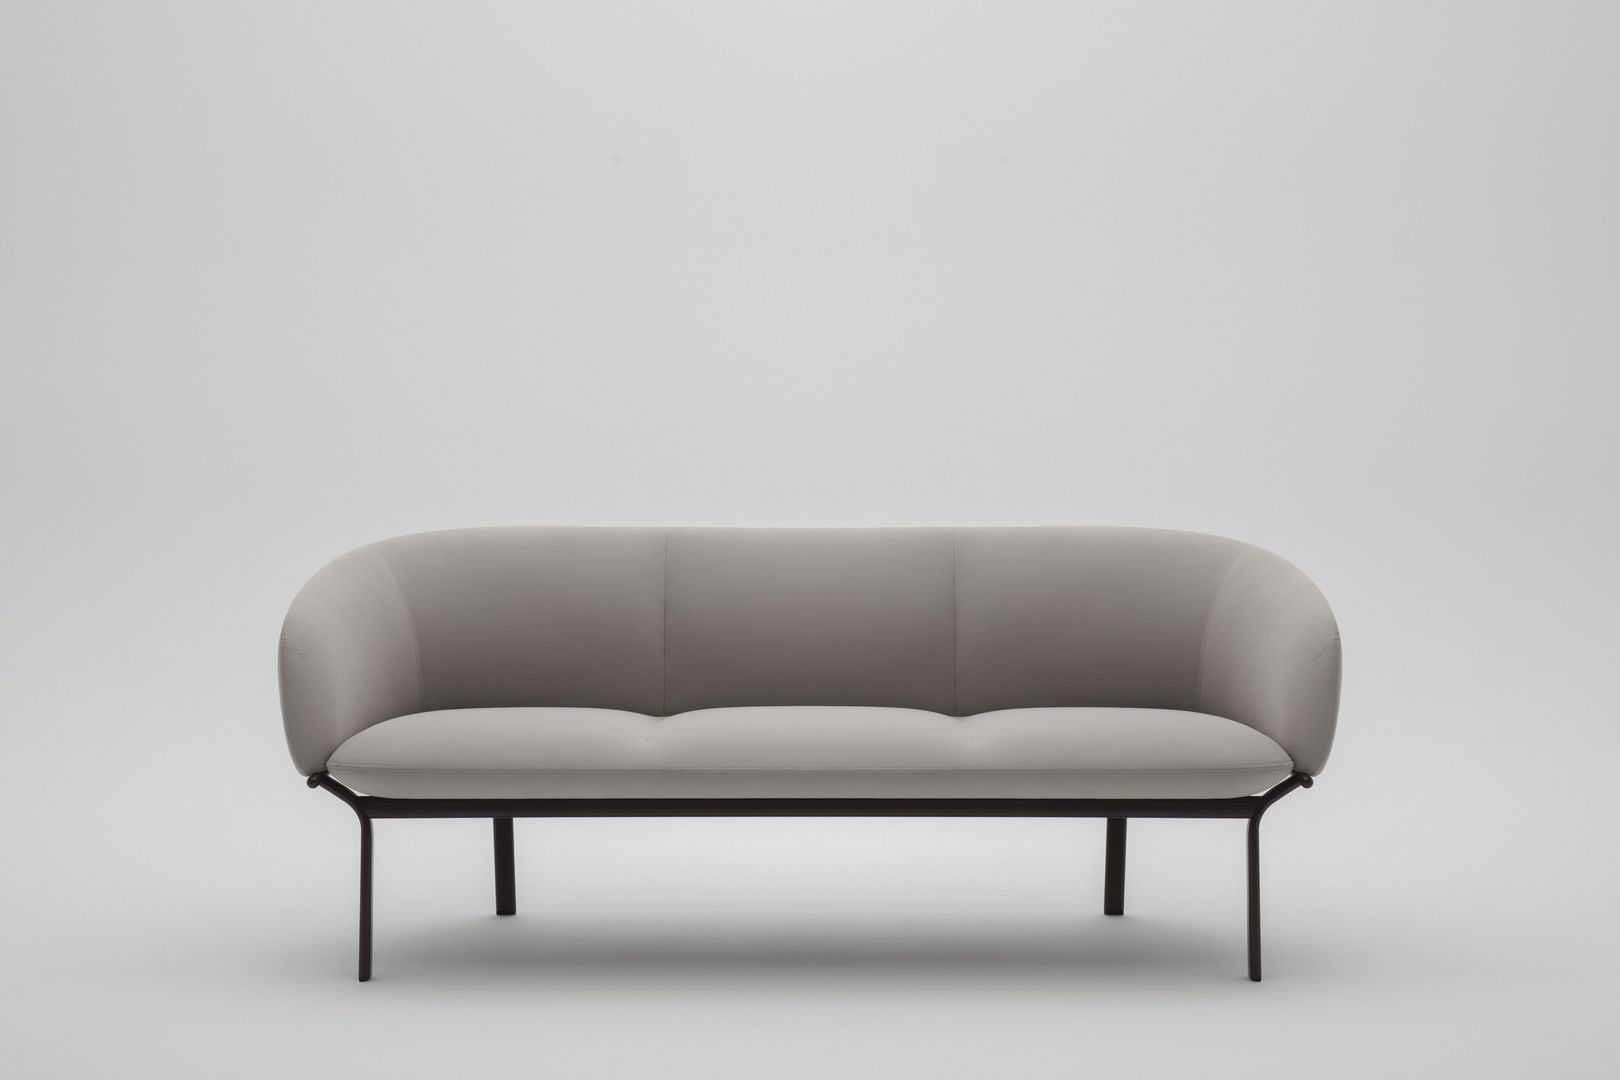 Sofa Grace Compact Sofa Contemporary Fabric Powder Coated Steel Grace